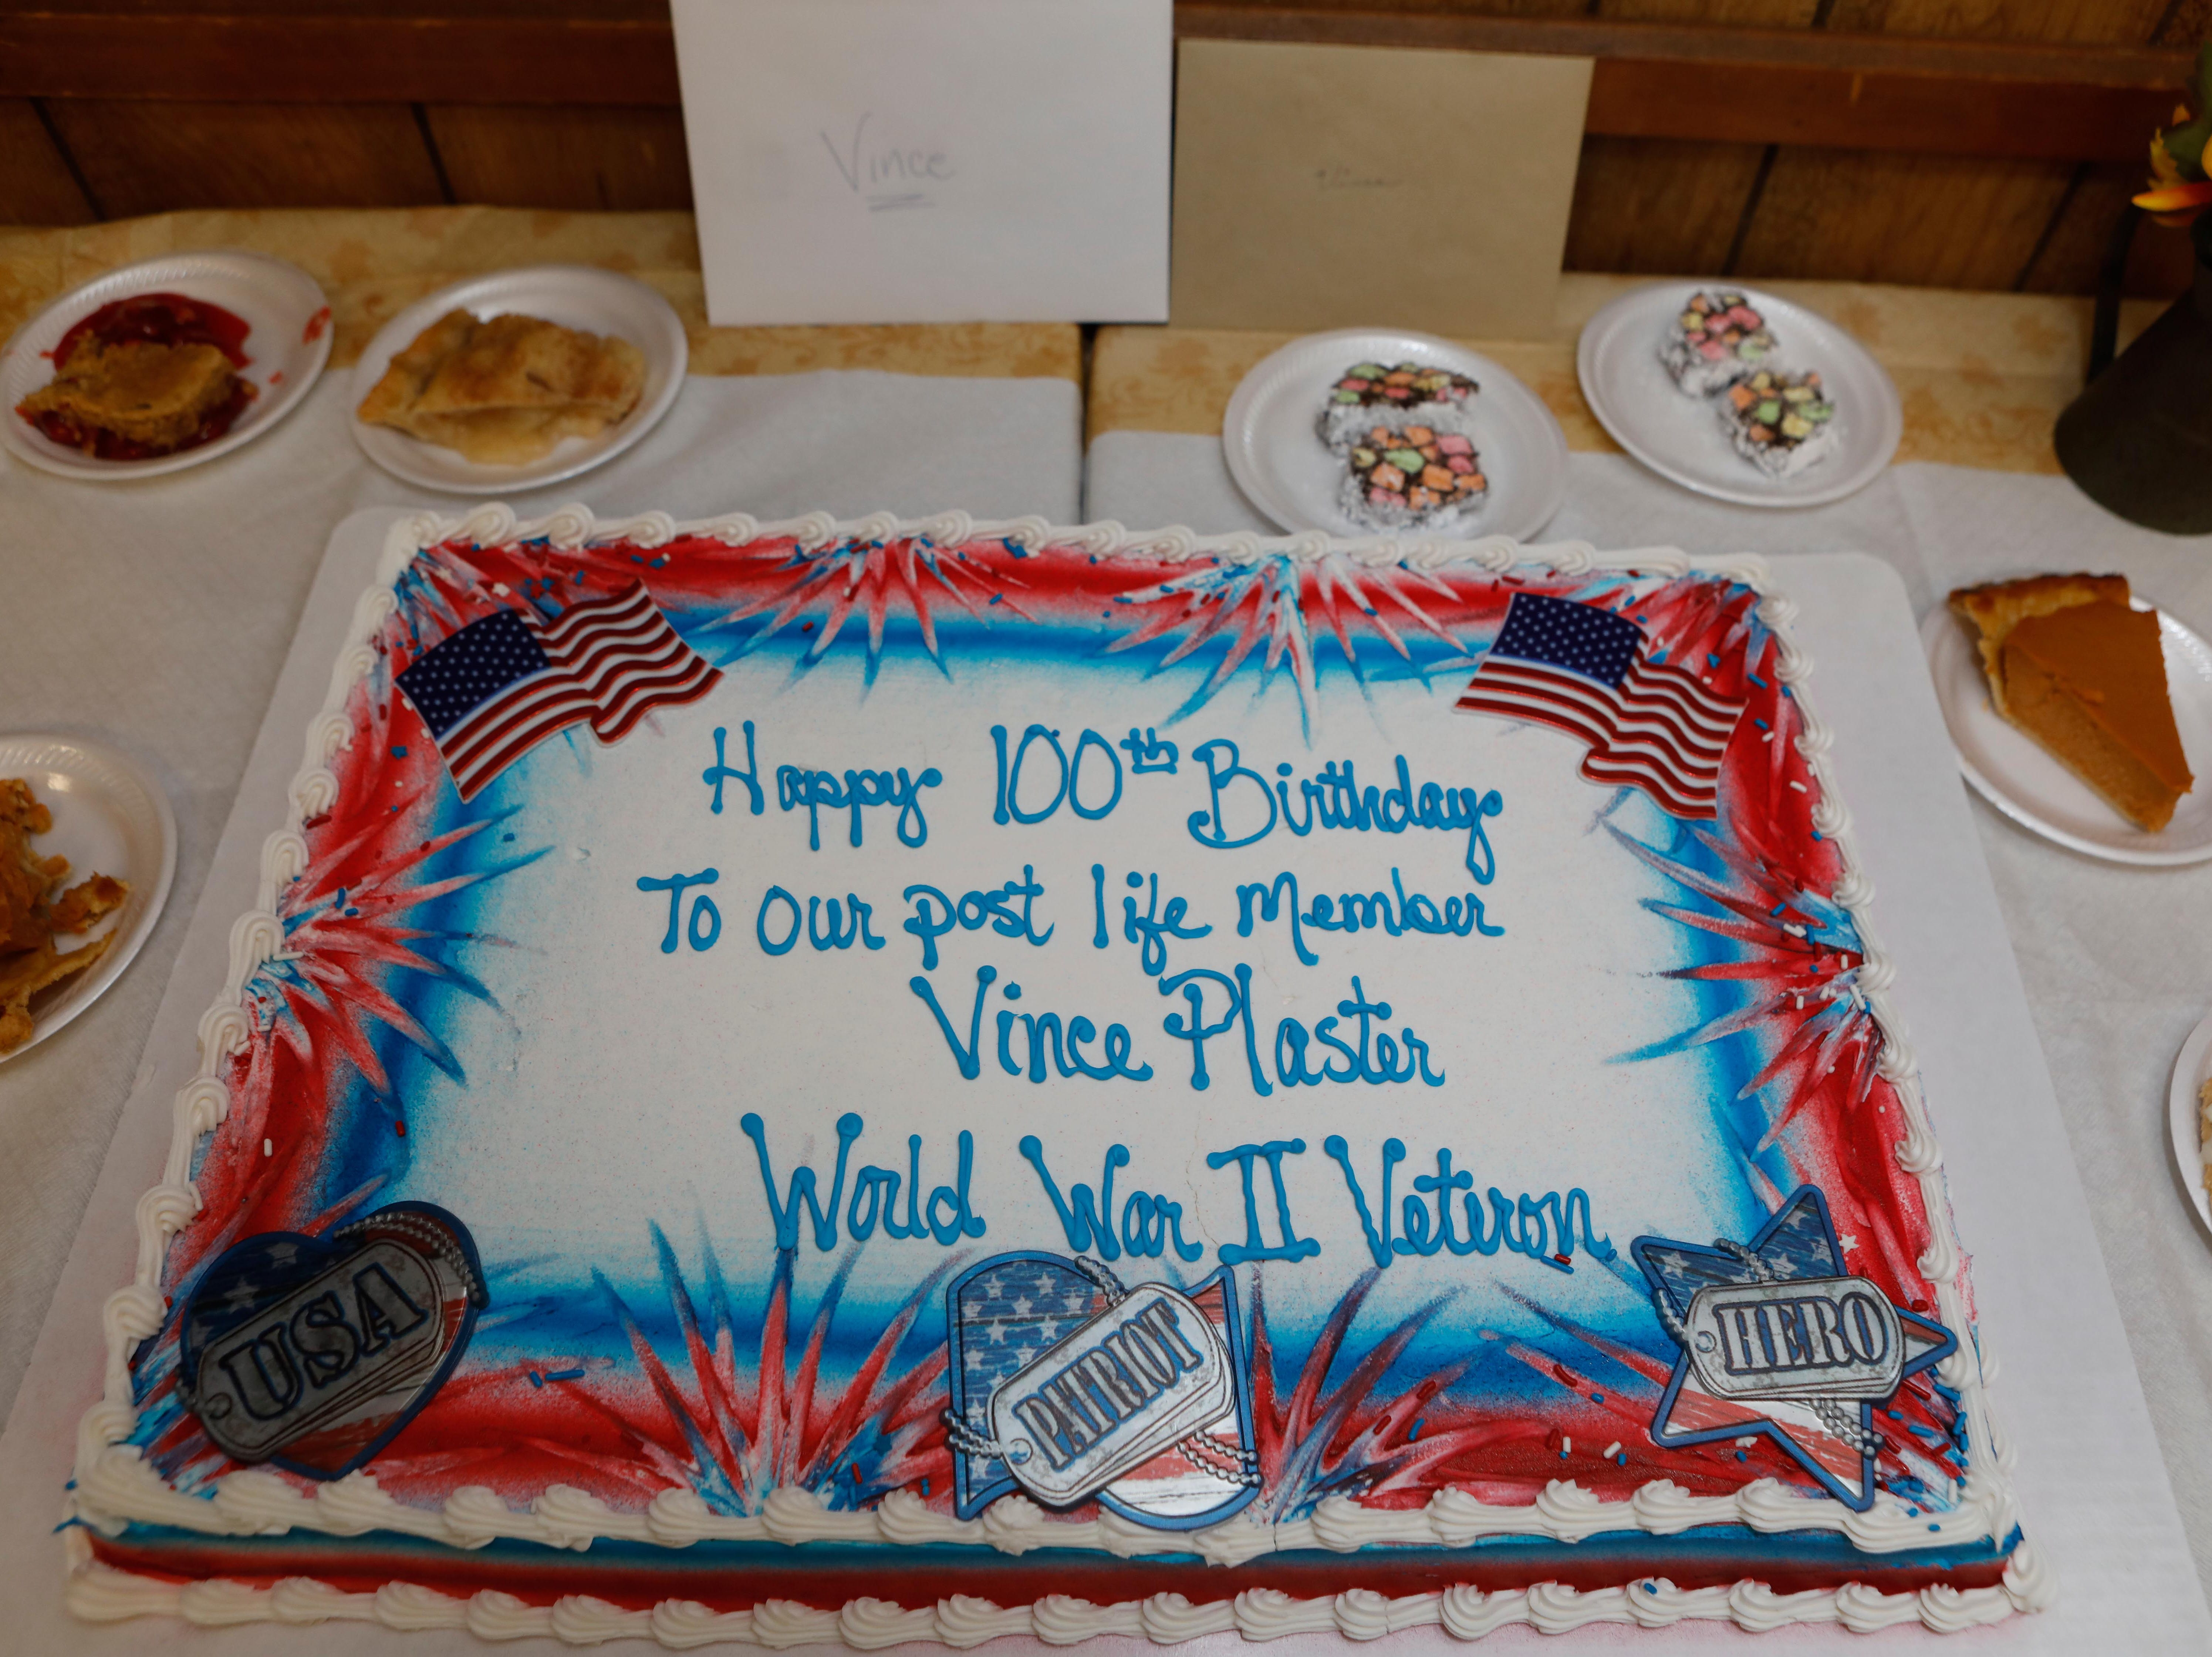 Vince Plaster, a WW ll veteran, was honored for his 100th birthday at VFW Post 3404's annual Thanksgiving dinner on Sunday, Nov. 18, 2018.